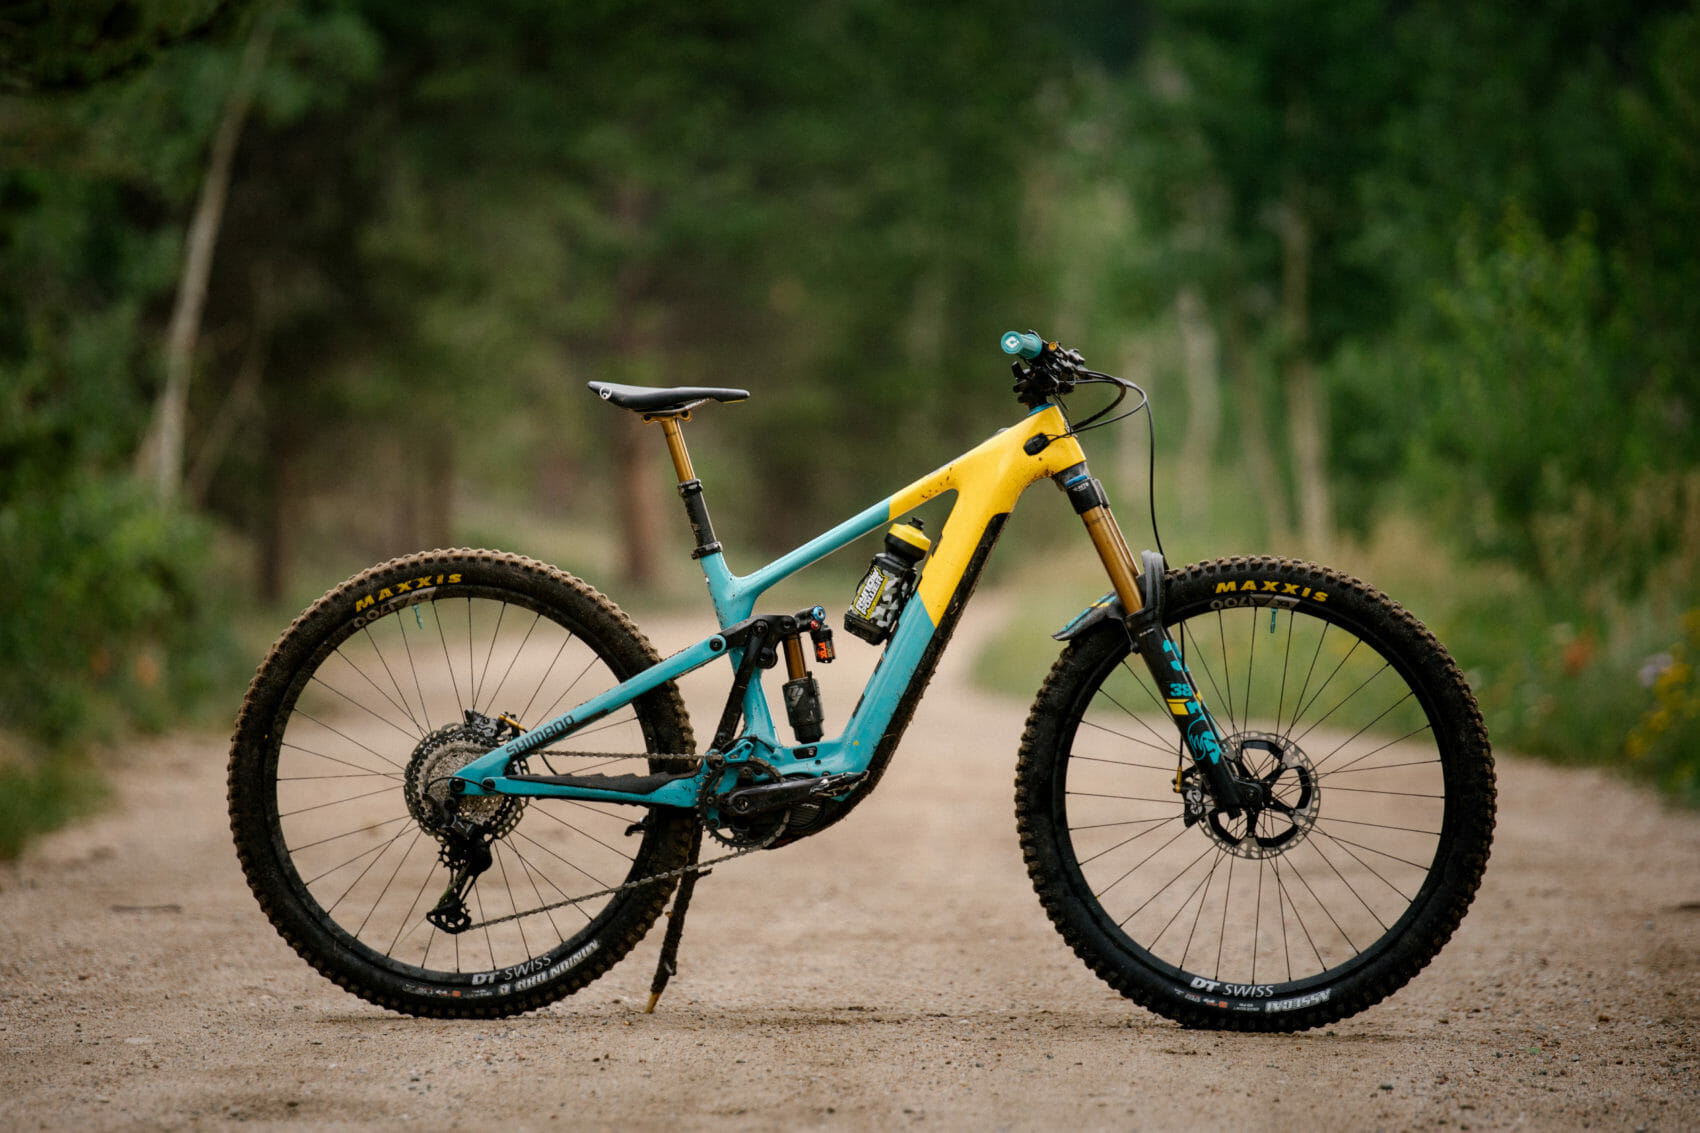 YETI CYCLES ENTERS E-MTB MARKET WITH LAUNCH OF THE RACE DRIVEN 160E